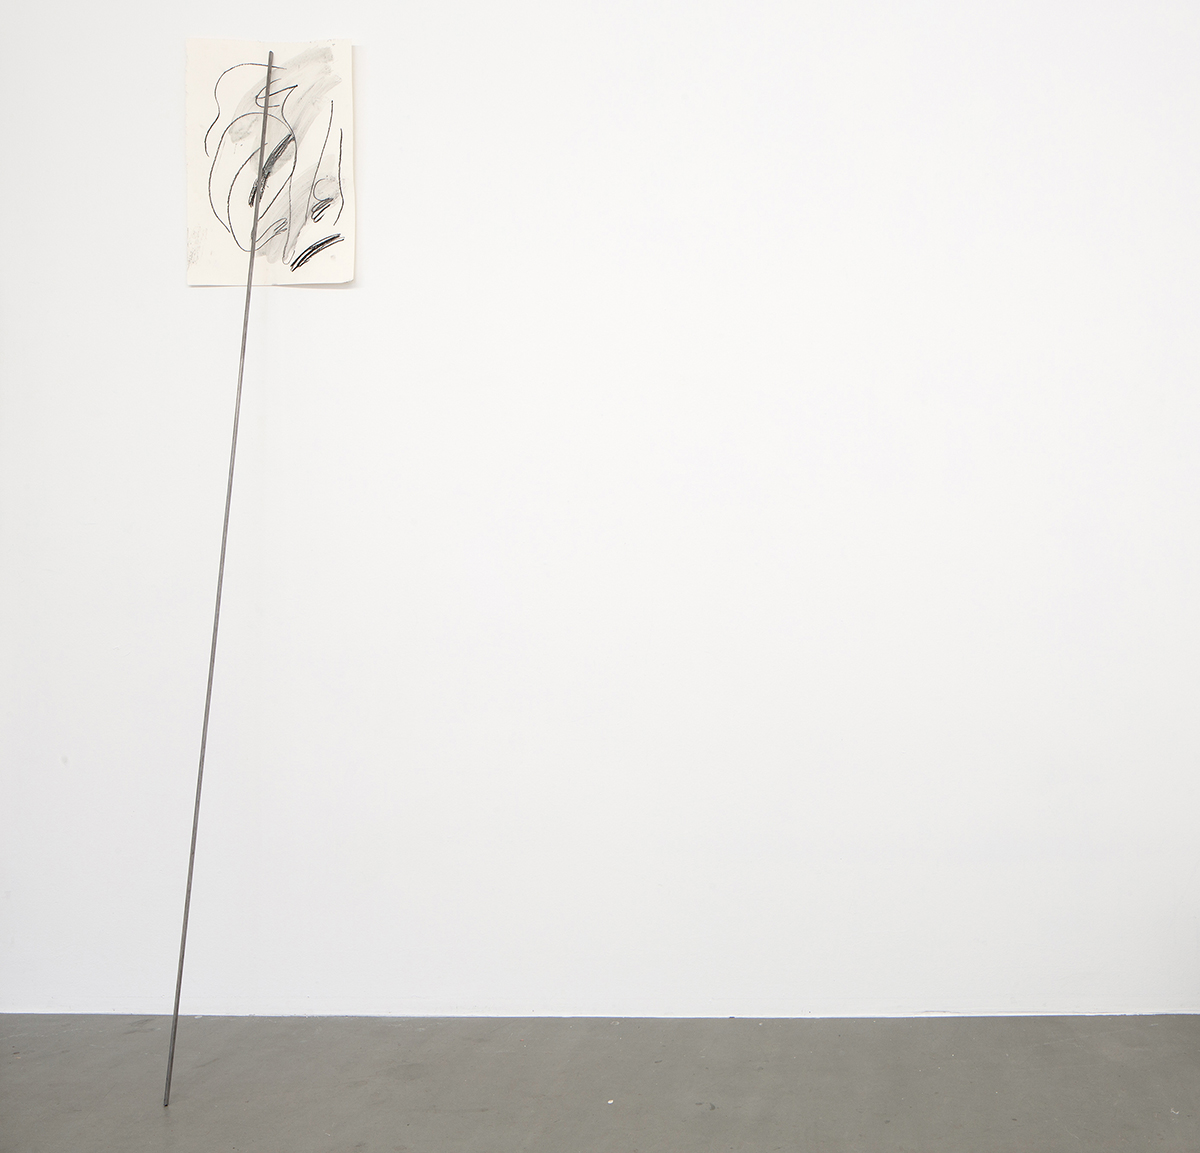 Alina Vergnano,  Untitled (Drawing) , 2019, Charcoal and pigment on paper, steel bar, 35 x 50cm